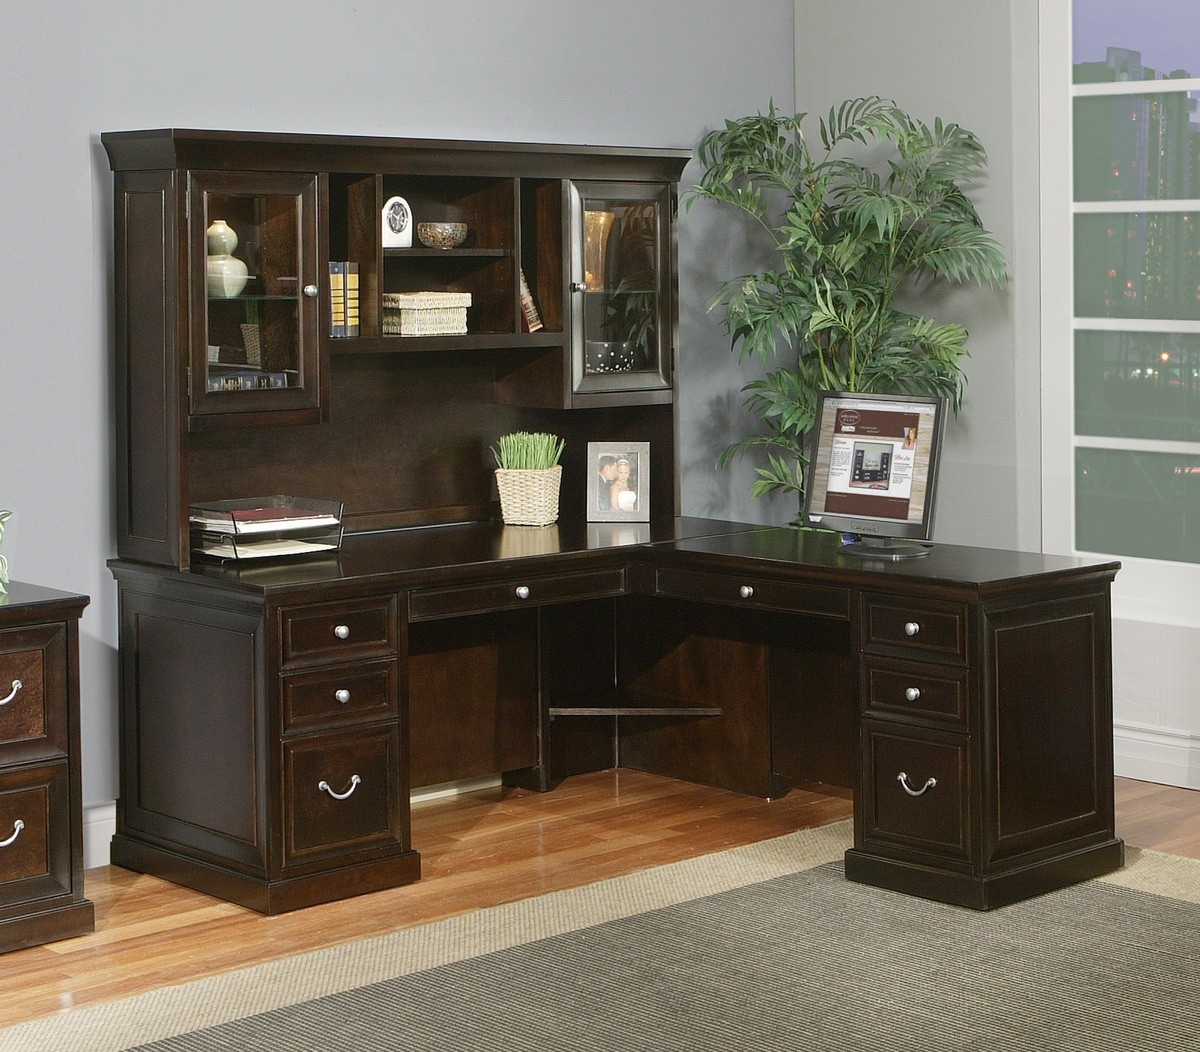 Beautiful Mainstays L Shaped Desk With Hutch Plus Storage And Computer Set In A Room With Gray Wall And Wooden Floor Plus Gray Carpet